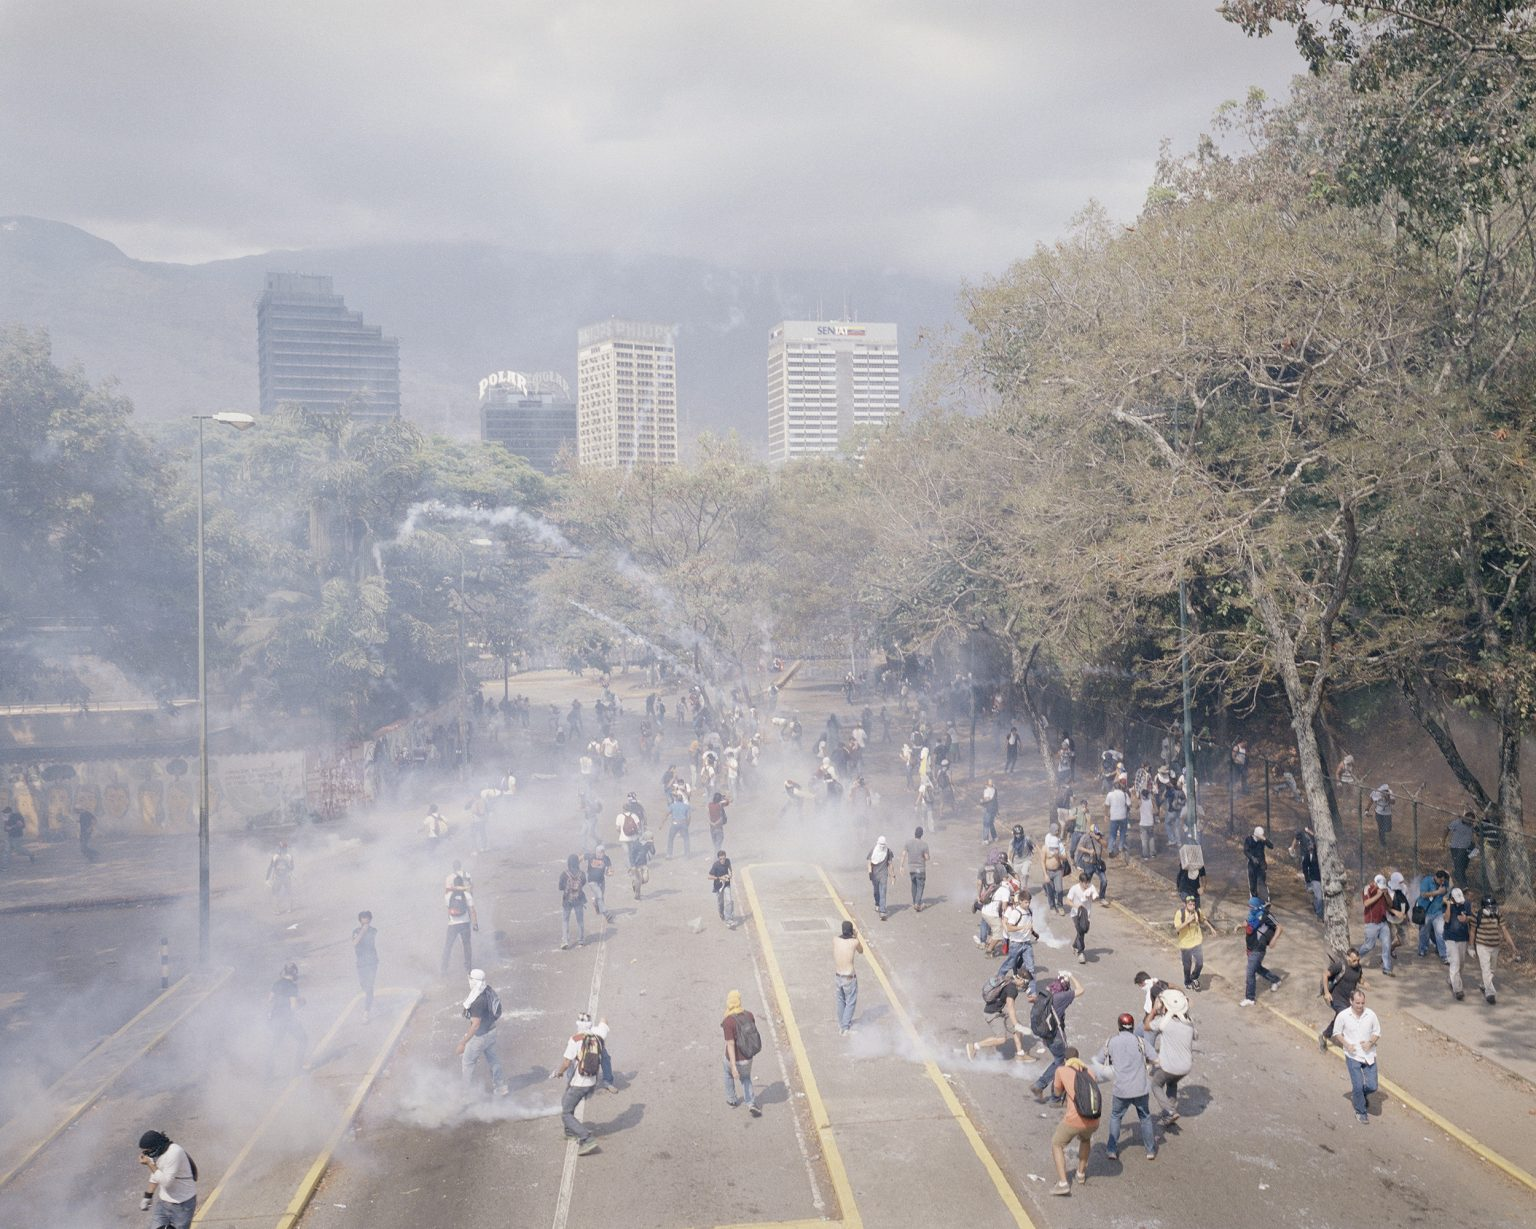 Clashes between the student movements of opposition and the National Guard near the Central University.